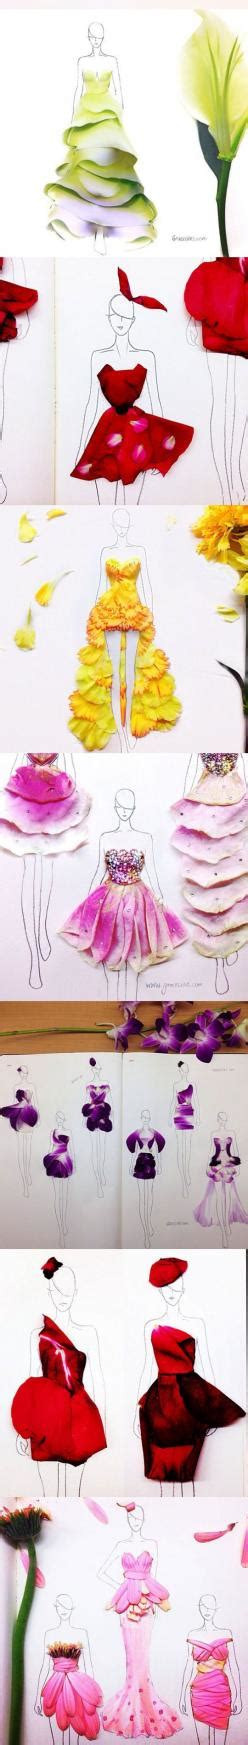 fashion illustration assignments dew beautiful flower nature daisies dewdrops